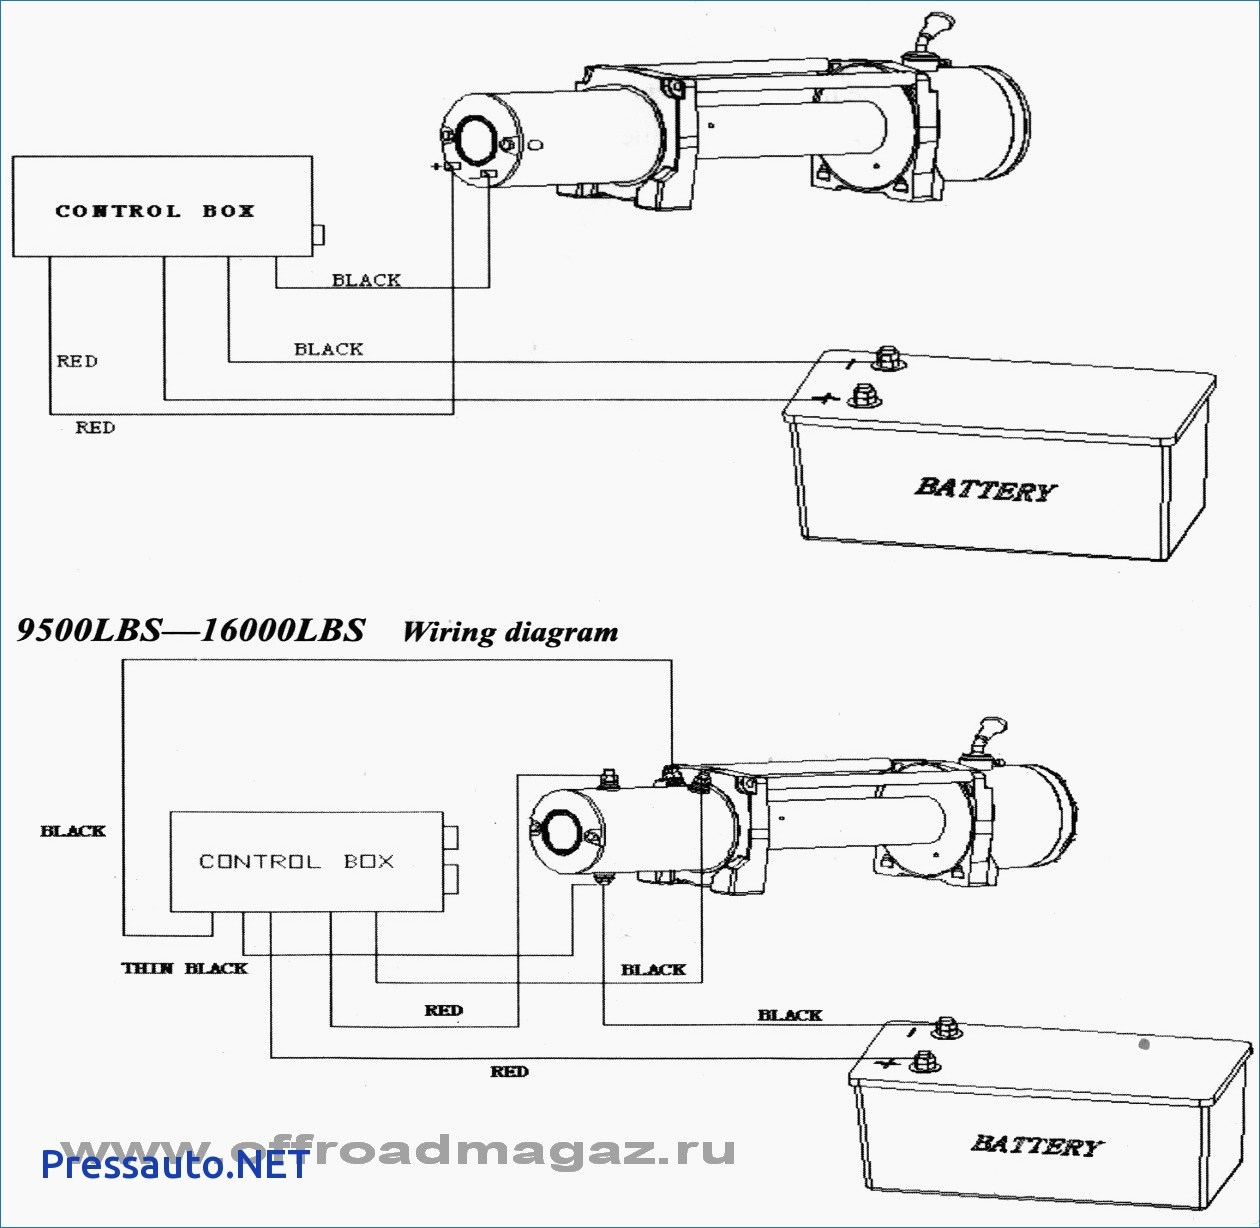 12 volt winch solenoid wiring diagram | free wiring diagram ramsey winch wiring diagram free download schematic clarion wiring diagram free download schematic